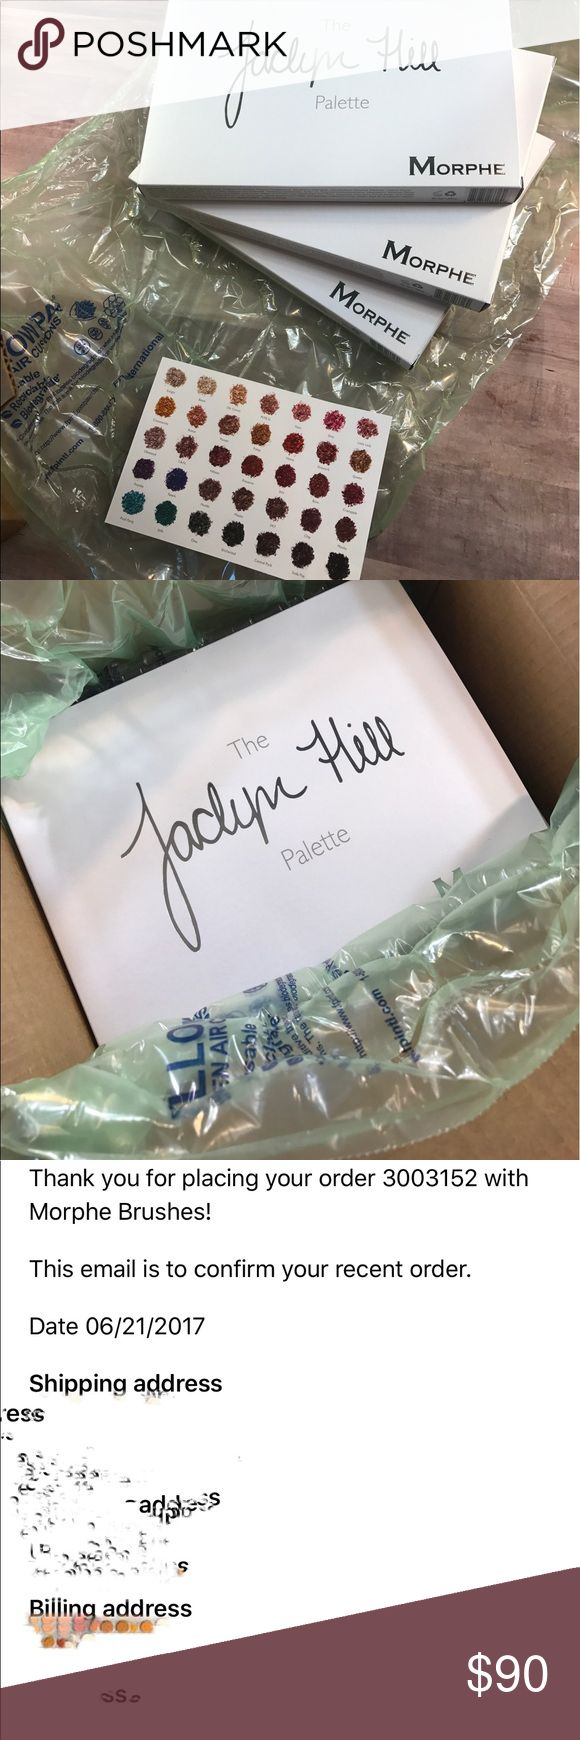 Jaclyn hill x Morphe palette Received mine two days ago! I have an extra two. Closest offer to my listing price gets them. Will send a copy of the shade card ( only received one) jaclyn hill Makeup Eyeshadow